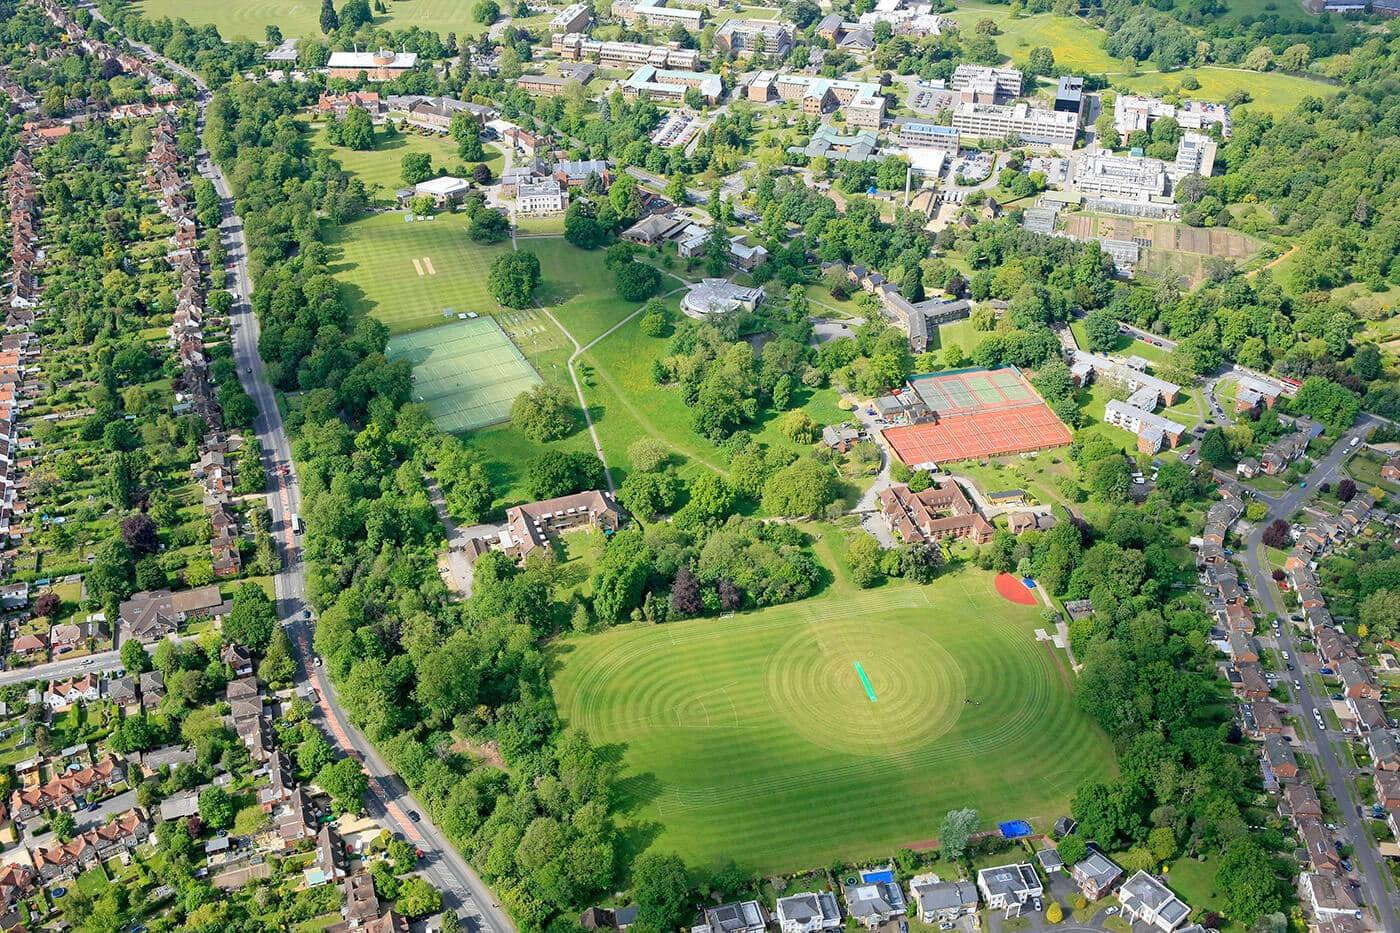 Aerial view from the school and surrounding